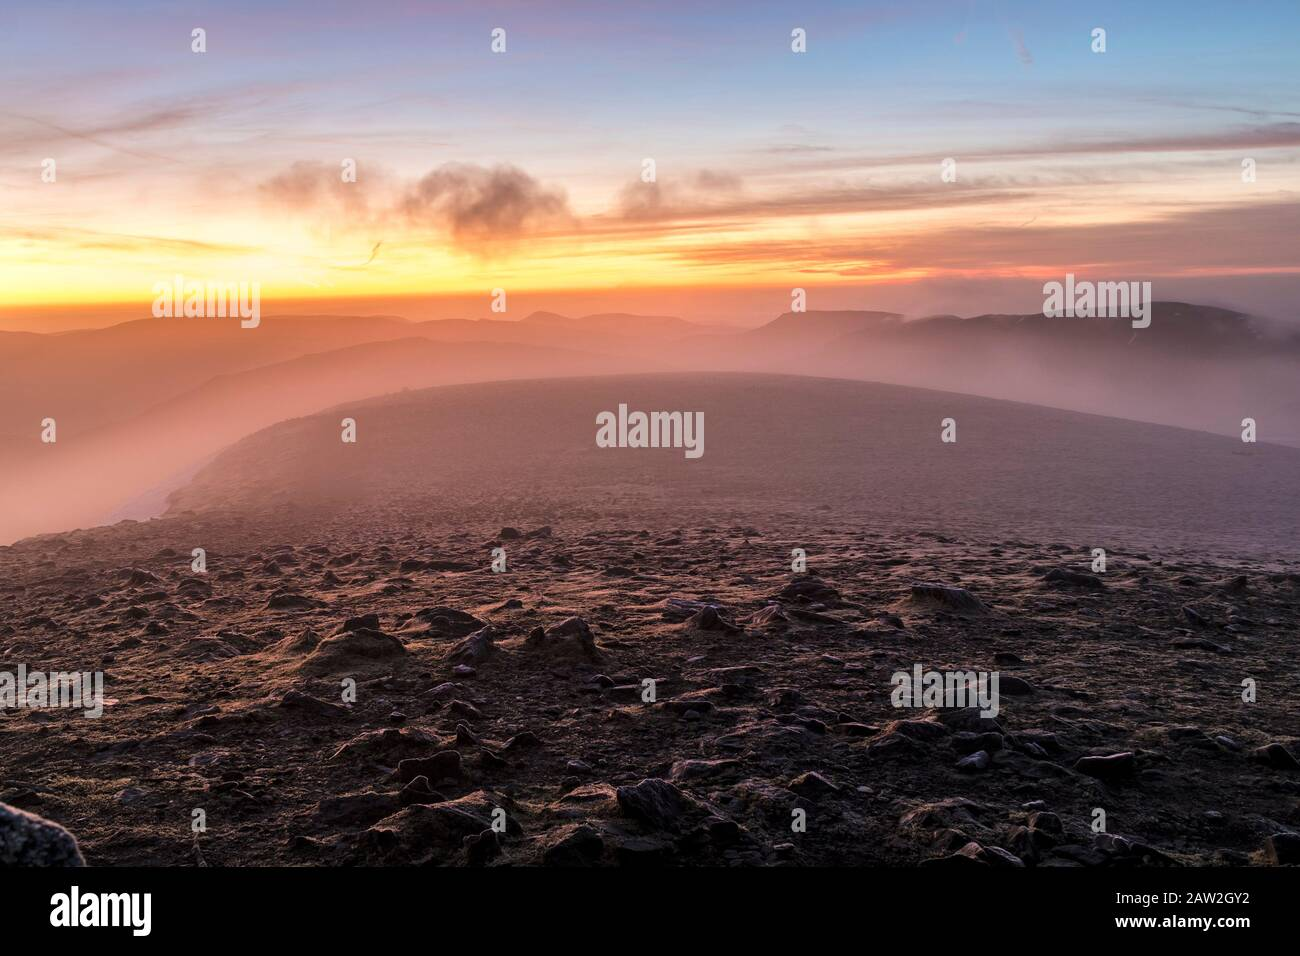 The View South at Dawn from the Summit Shelter on Helvellyn as Mist Sweeping Across the Plateau, Lake District, Cumbria, UK Stock Photo